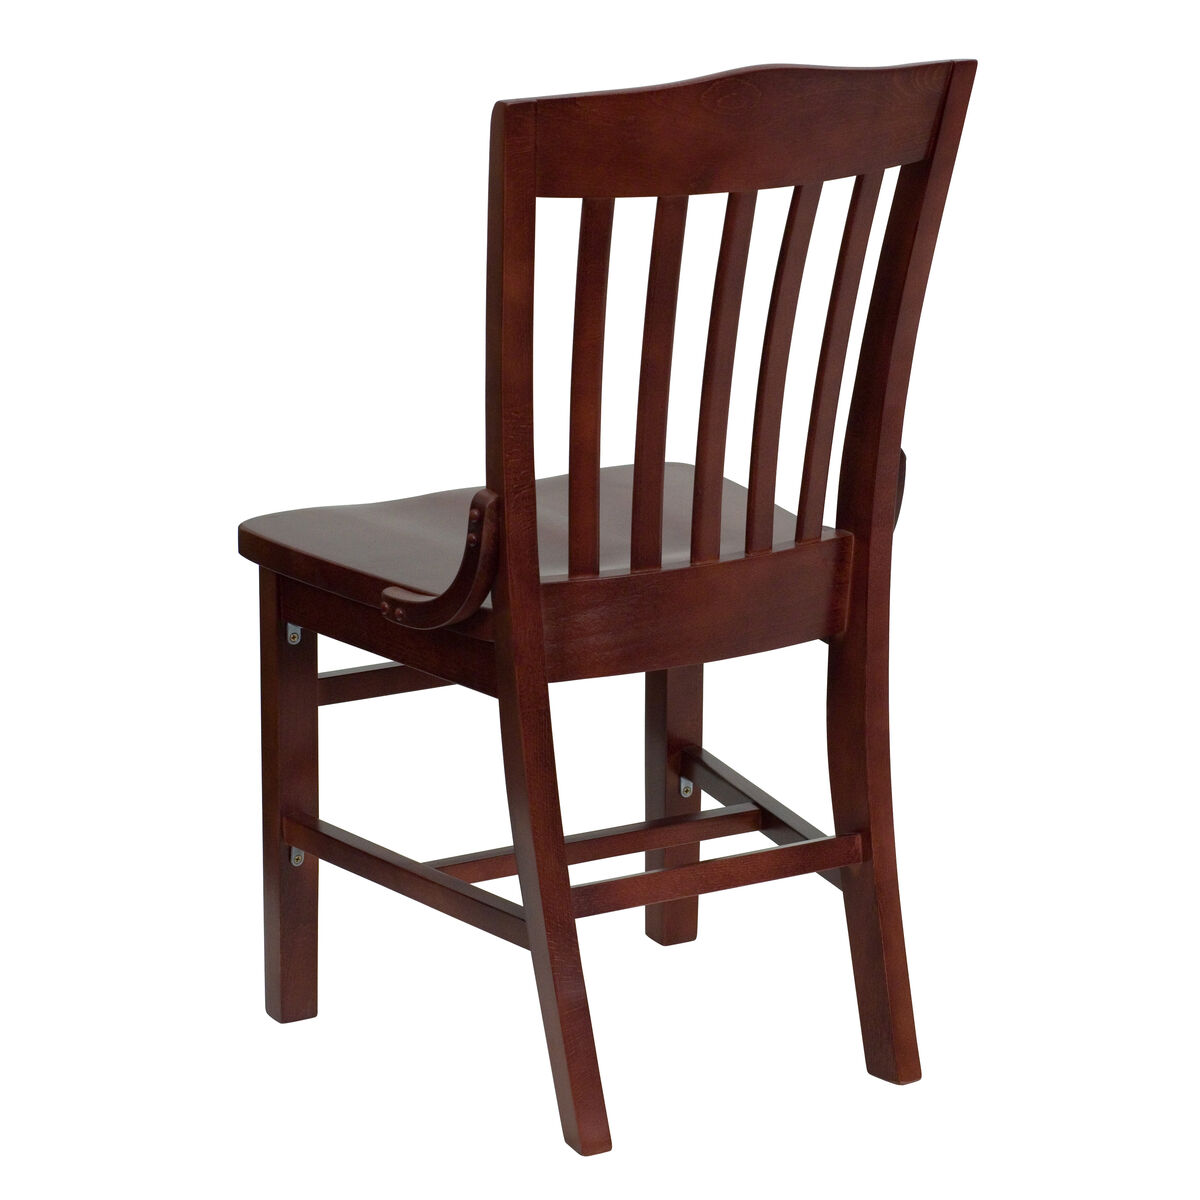 Mahogany wood dining chair bfdh 7992mbk tdr for Furniture 4 schools